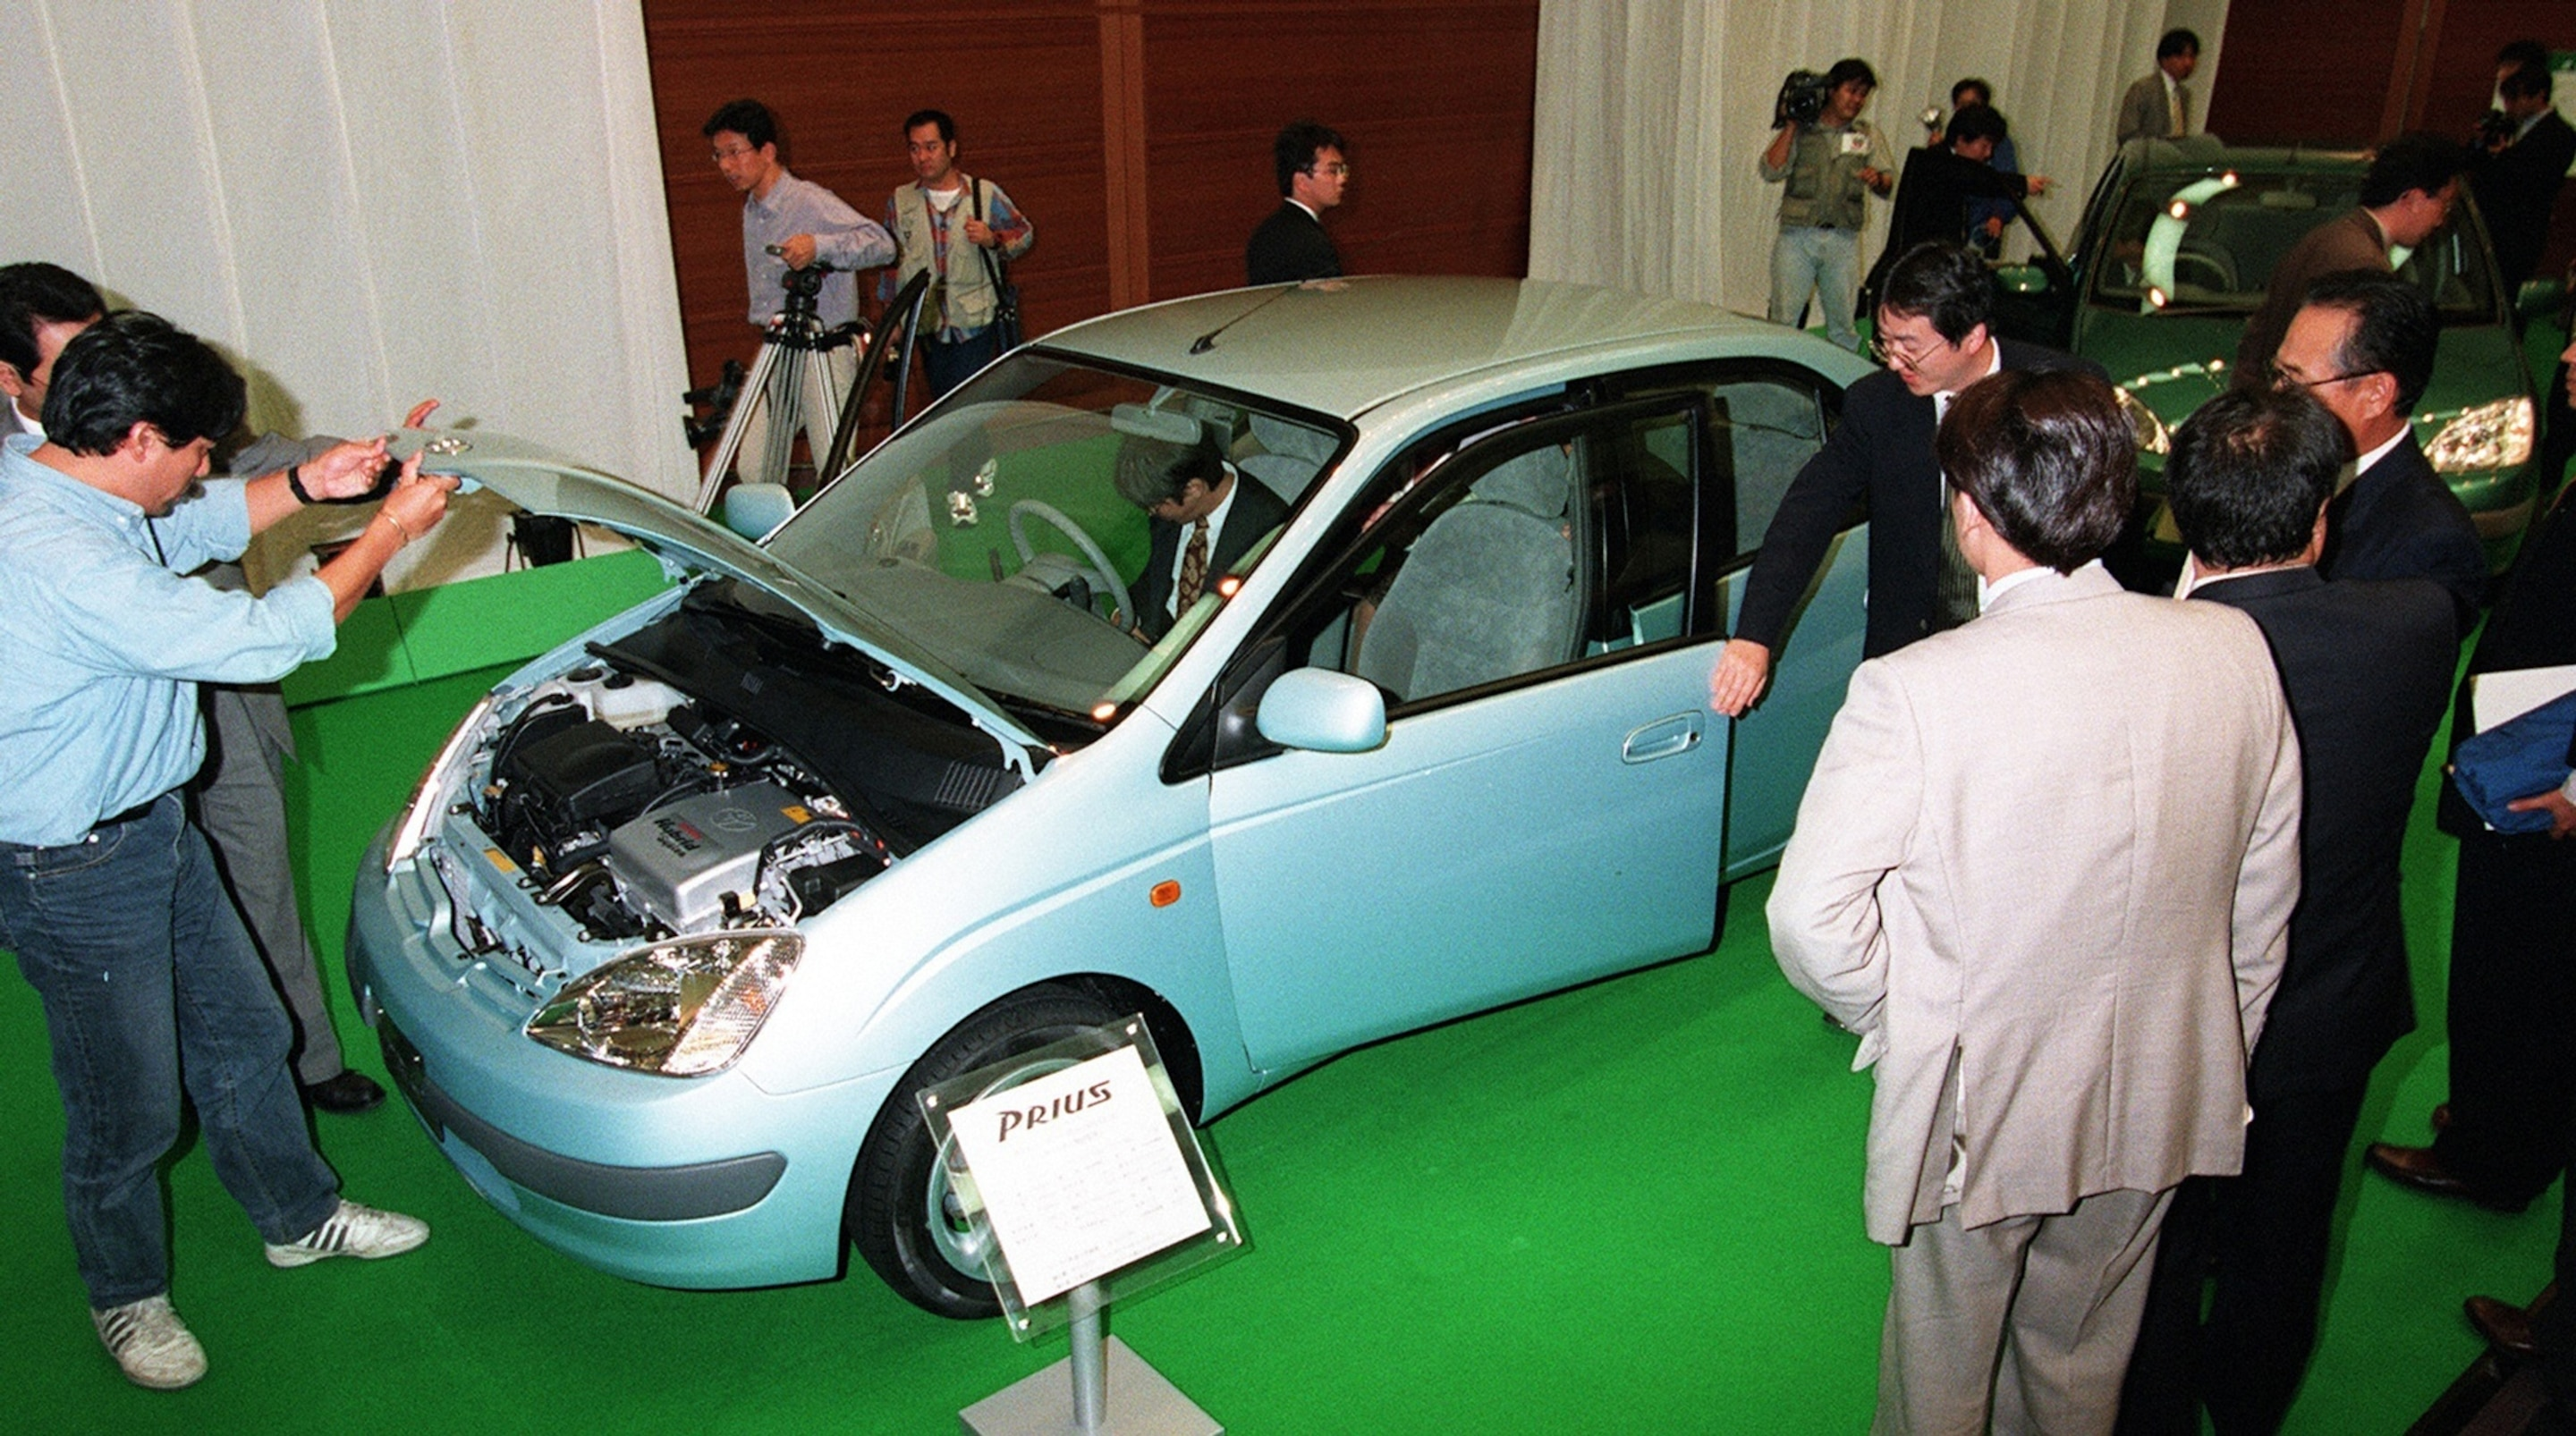 First prius unveiled in japan